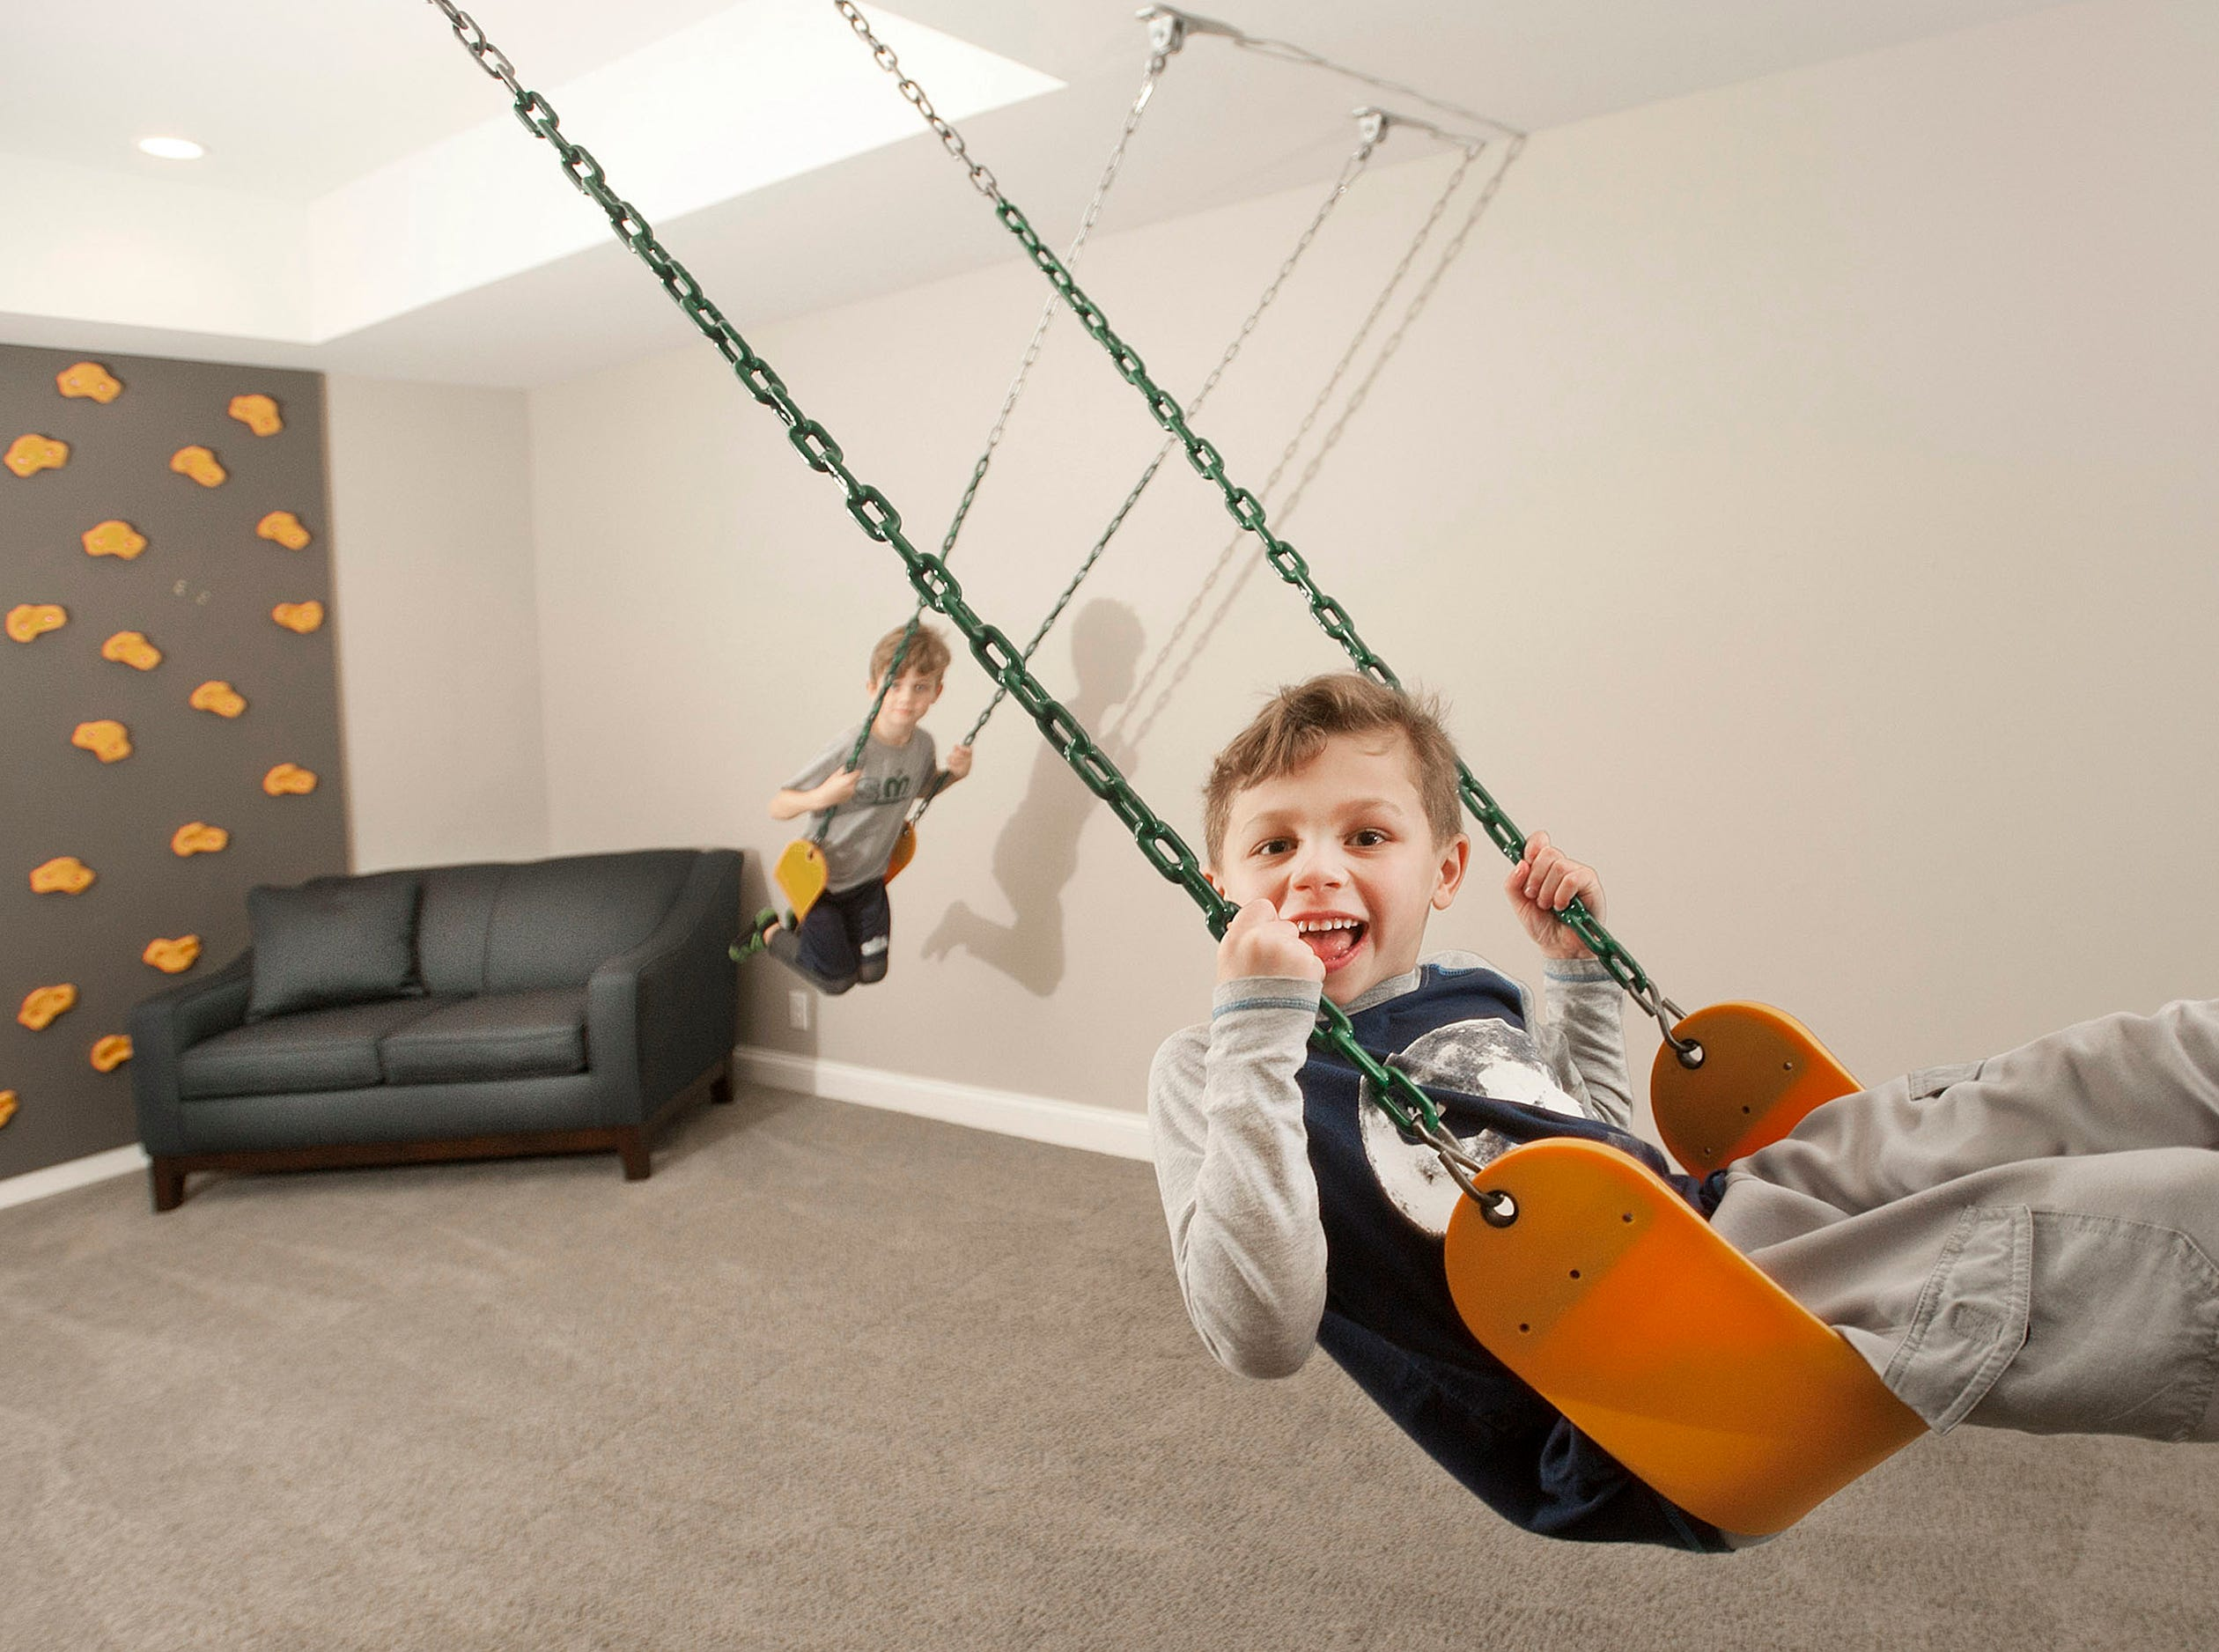 Ellis (right) and Ashur (left) Hannah play on a swing set hanging in the home's basement. At far left is a climbing wall for the boys, ages 5 and 7.01 March 2019